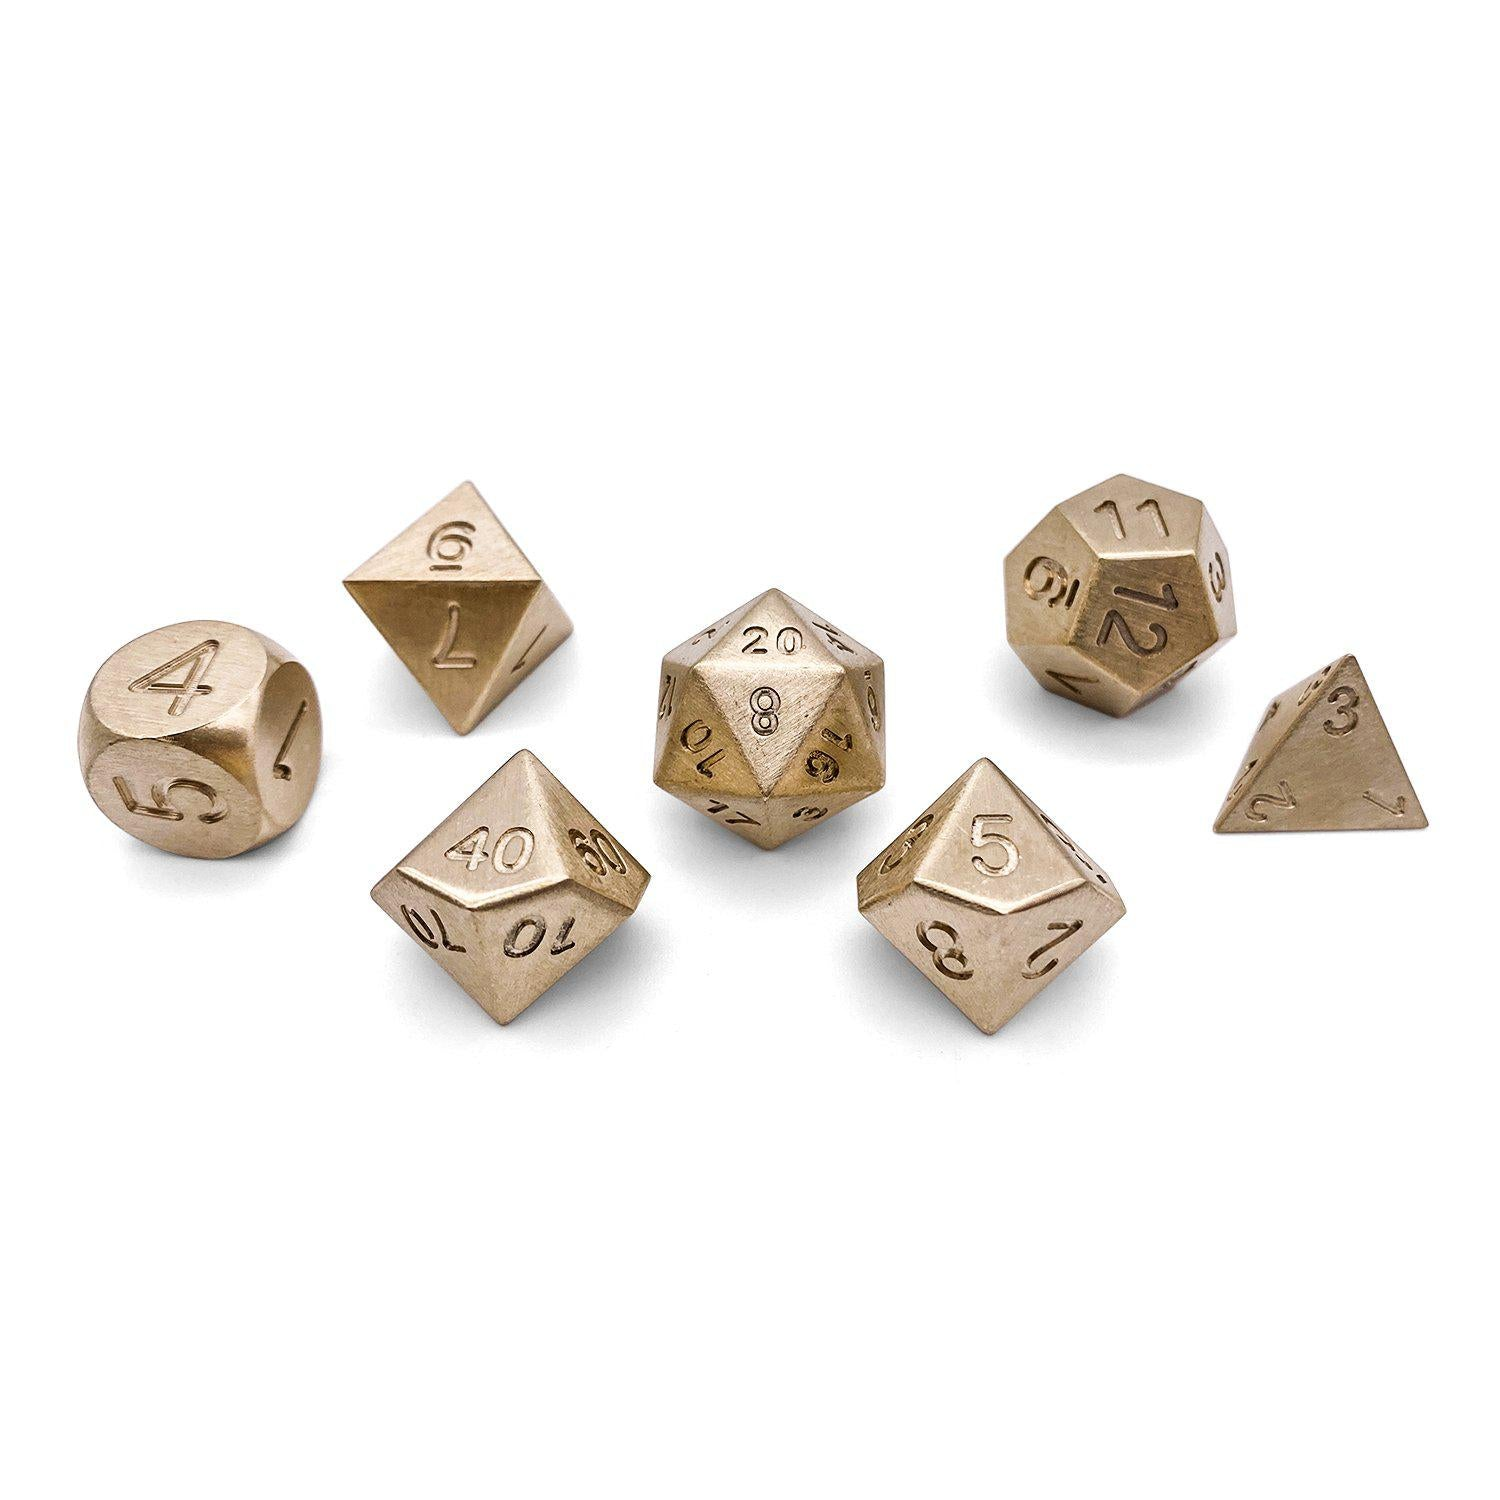 Set of 7 Bronze RPG Dice by Norse Foundry Polyhedral Dice Set